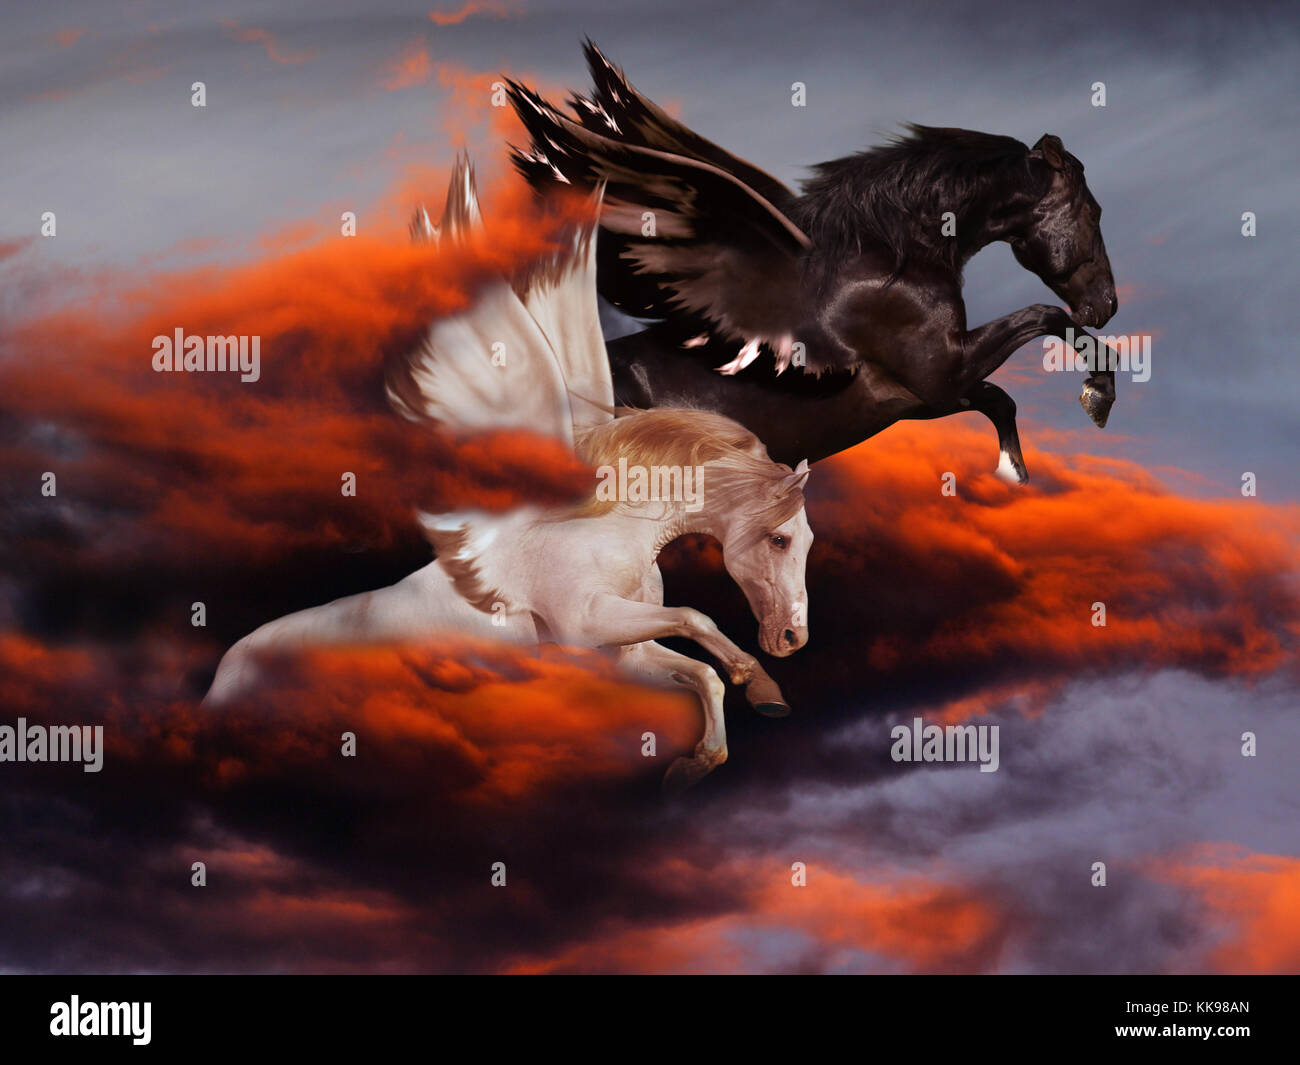 Two magical winged horses, one black and the other white, fly through dramatic red and black clouds. - Stock Image